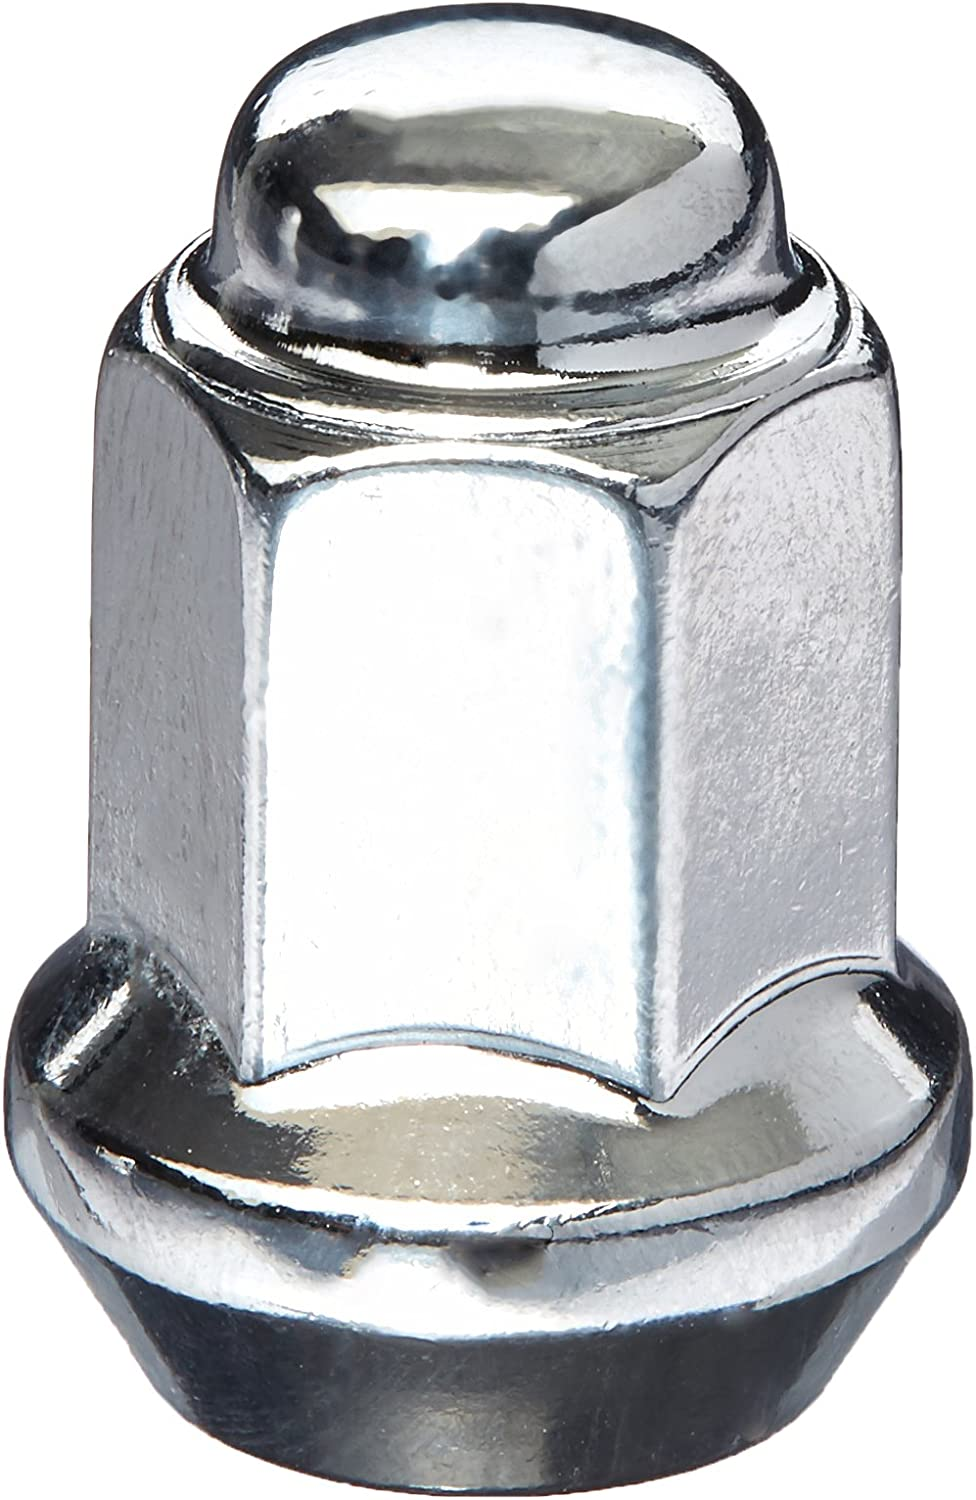 "01-13 POLARIS SPORTS500H: ITP Lug Nut Set (Chrome / 3/8 24"" / Tapered)"